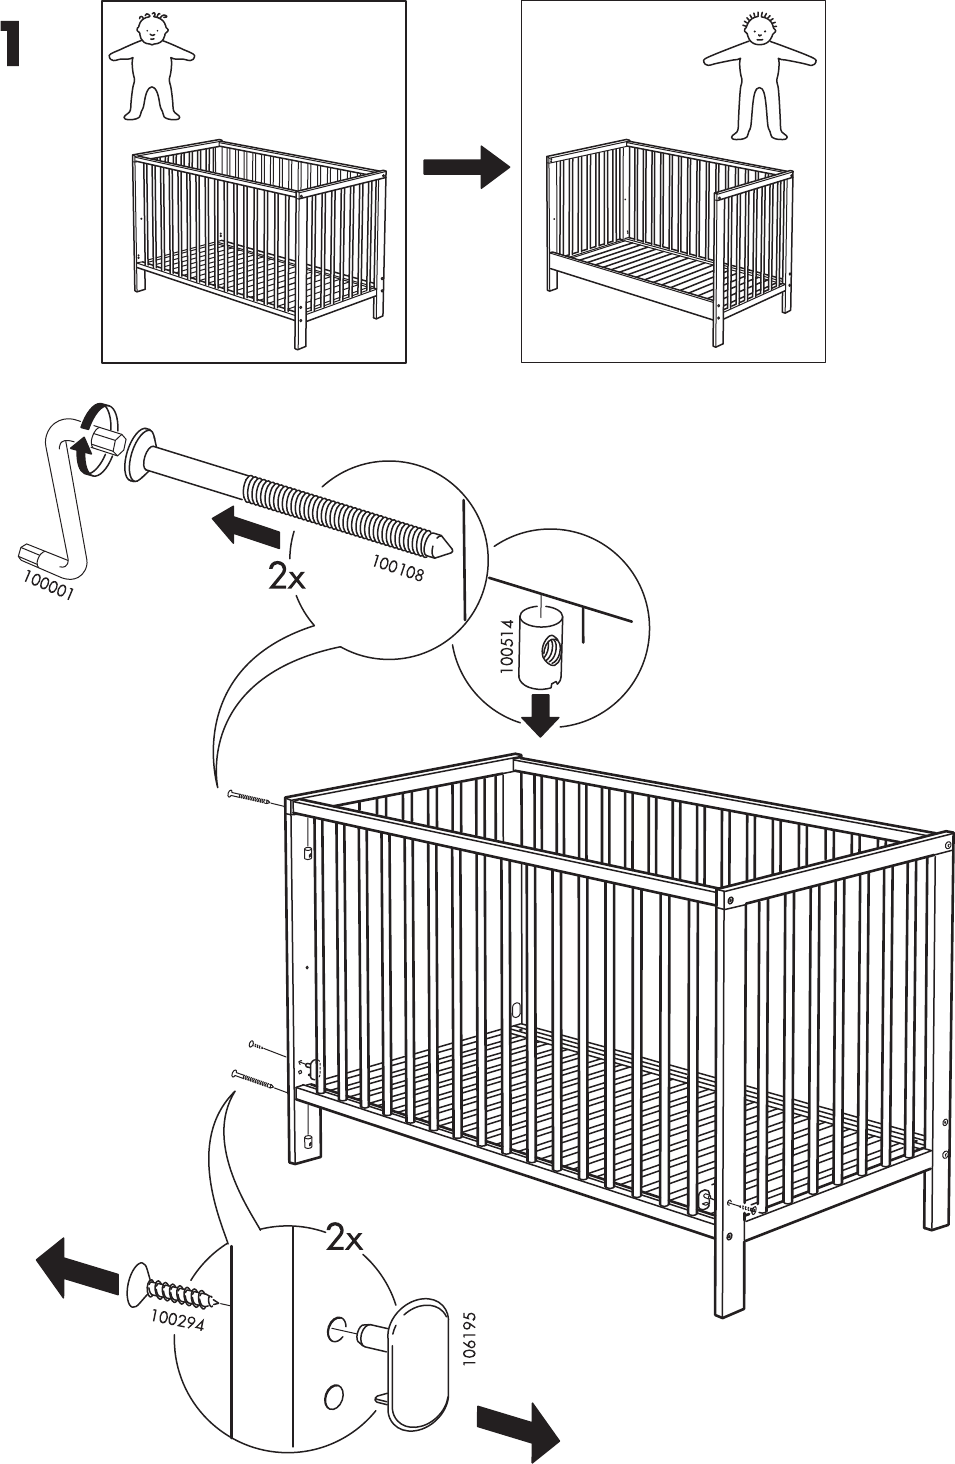 How To Put Together A Jenny Lind Crib. Evenflo Recalls To